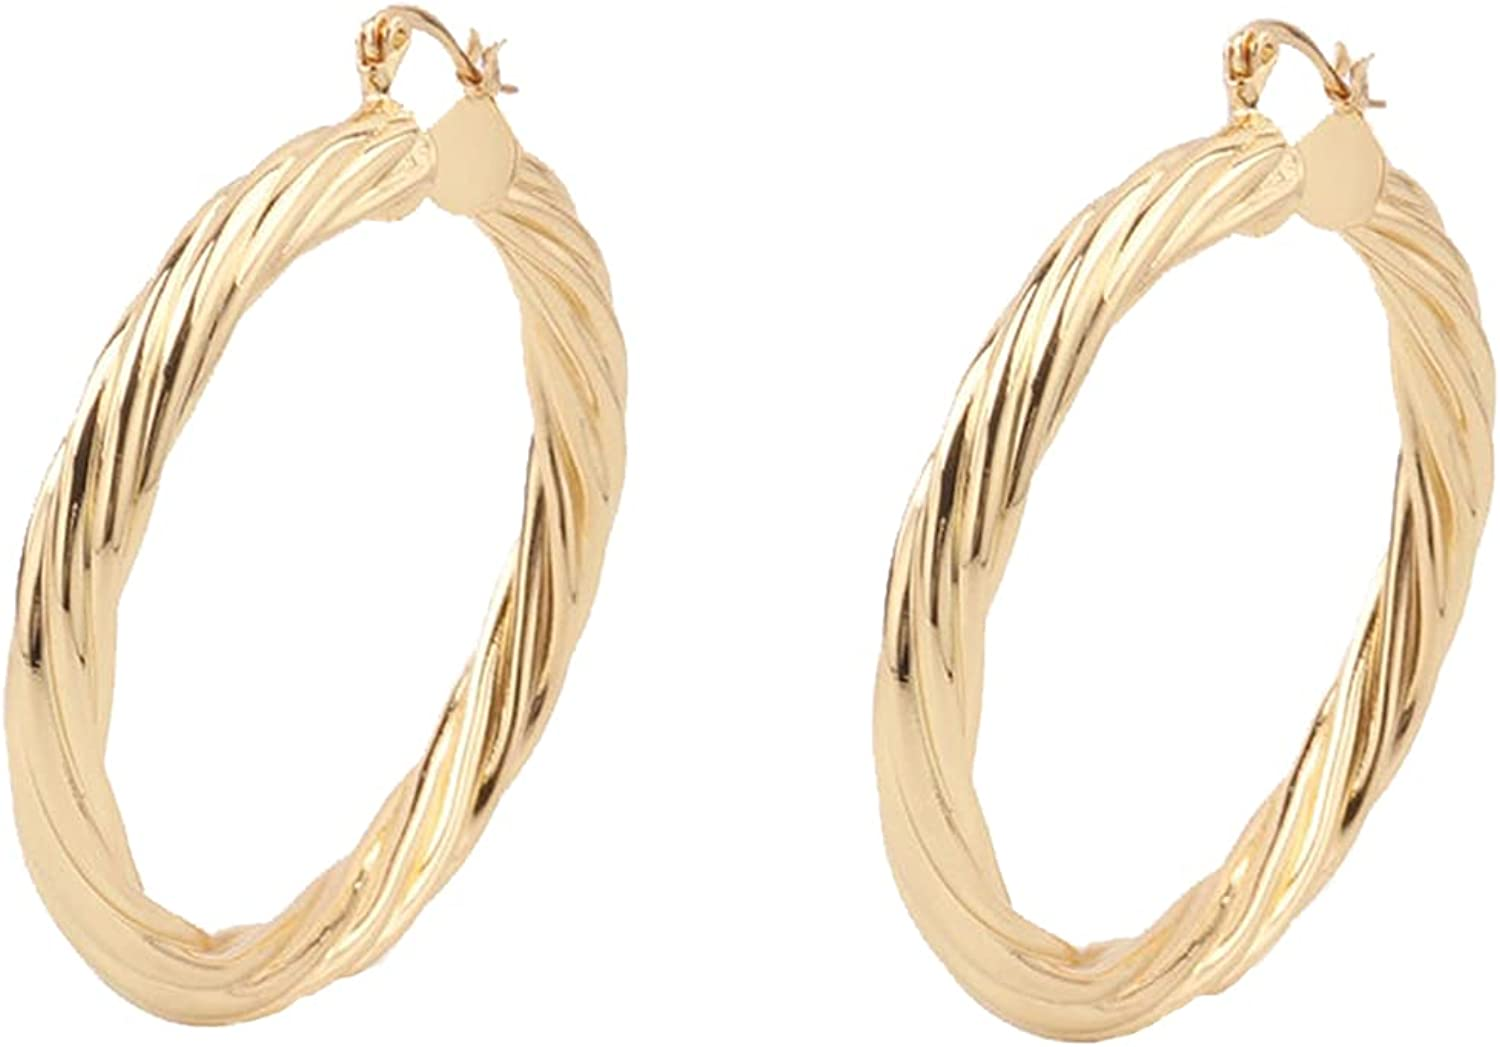 Custom Handmade 1 Pair Twisted 55mm 18kt Gold Filled Round Hoops Earrings, Minimal Everyday Style Craftsmen Made Wholesale Bulk Factory